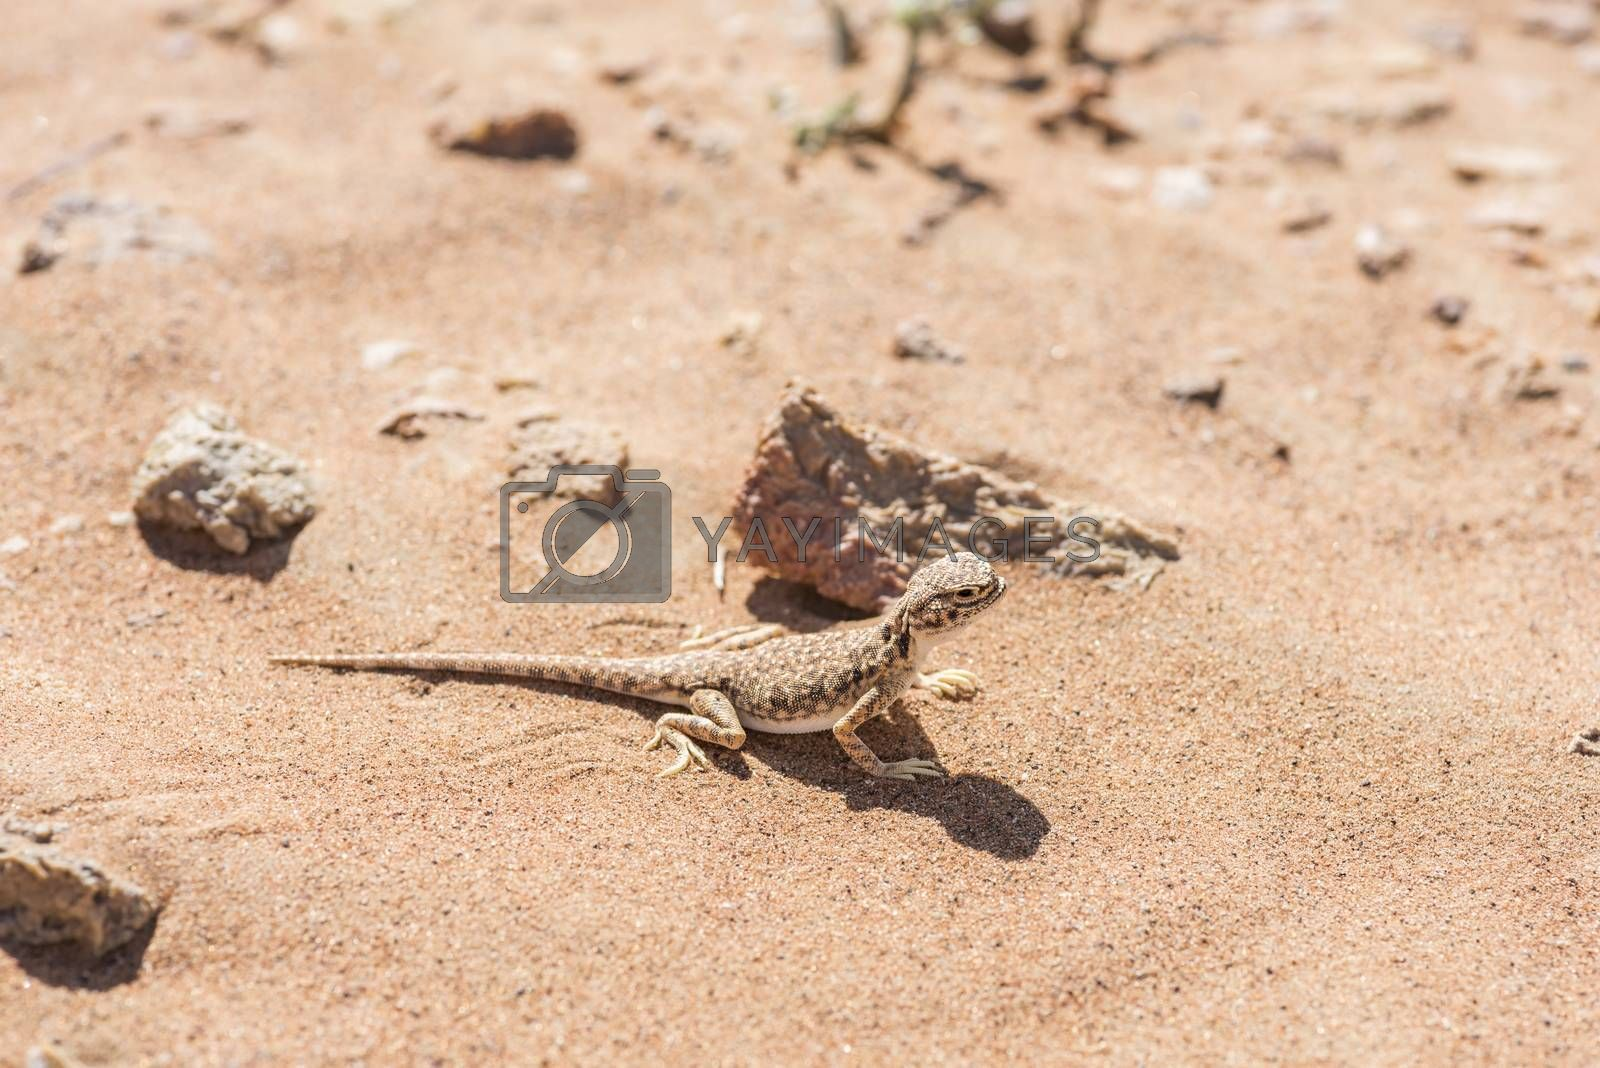 Close-up of Arabian toad-headed agama (Phrynocephalus arabicus) in the Desert, surrounded by sand and few small stones, Sharjah, UAE